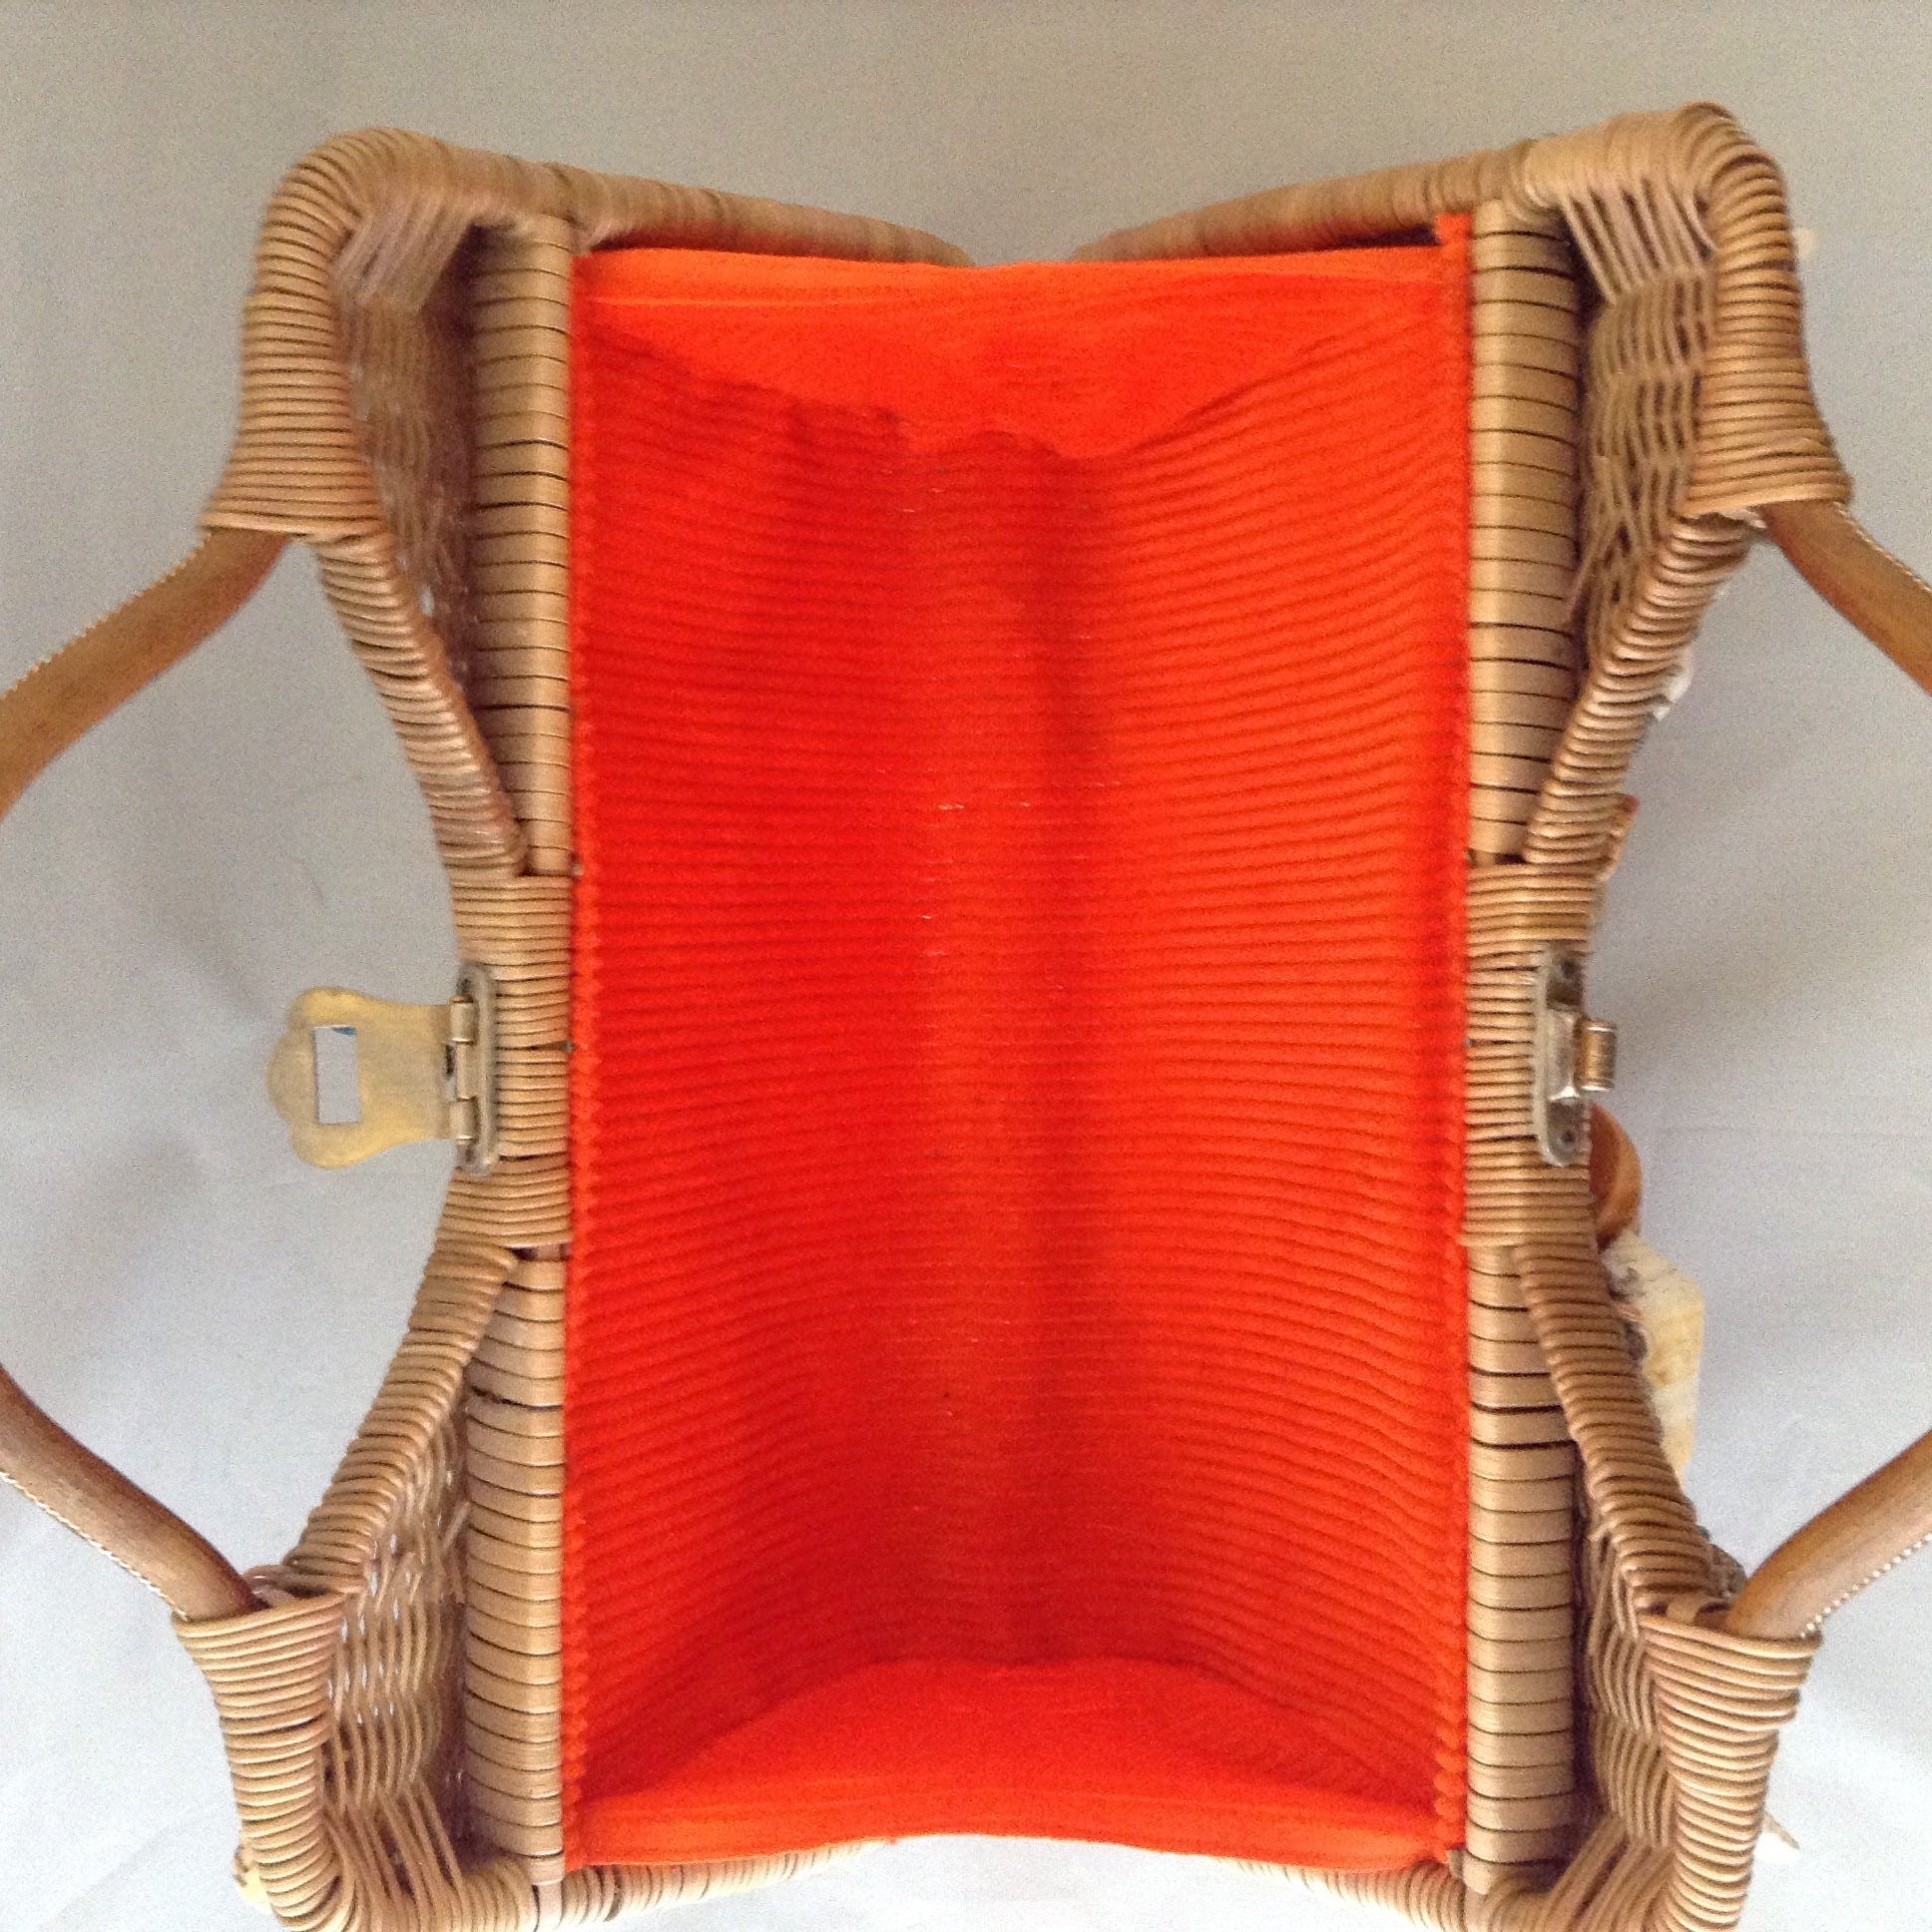 "Lovely tan straw-grass purse made in Bali in the 1960s imagines a tropical sea bed with red silk lining. 1,014 shells, large and small, went into the making of this stunning piece. (Wanna count 'em?)  Dimensions - 8-1/2"" Height; 13-1/2"" Width""; 11 Length"